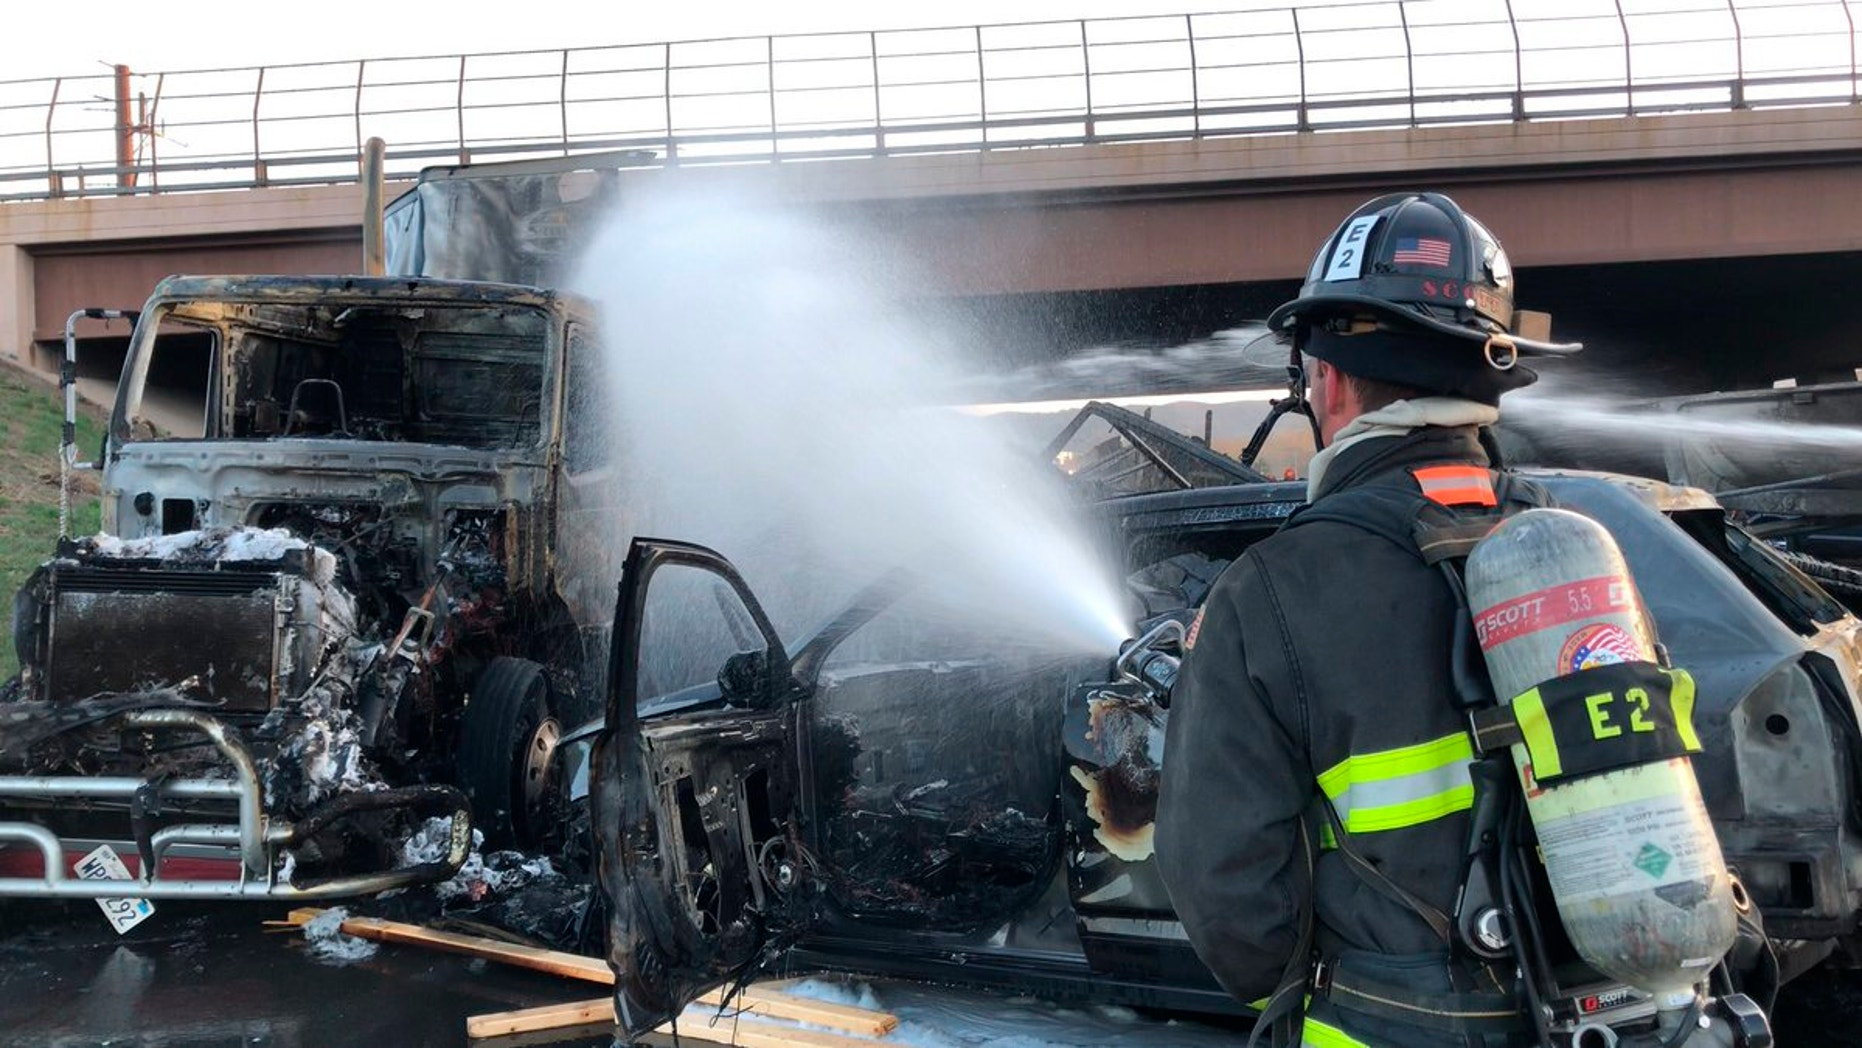 This Thursday, April 25, 2019 photo provided by West Metro Fire Rescue shows a firefighter working the scene of a deadly pileup involving over two dozen vehicles near Denver. A truck driver blamed for causing the deadly pileup has been arrested on vehicular homicide charges. Lakewood police spokesman Ty Countryman said Friday that there's no indication that drugs or alcohol played a role in the crash. (Ronda Scholting/West Metro Fire Rescue via AP)